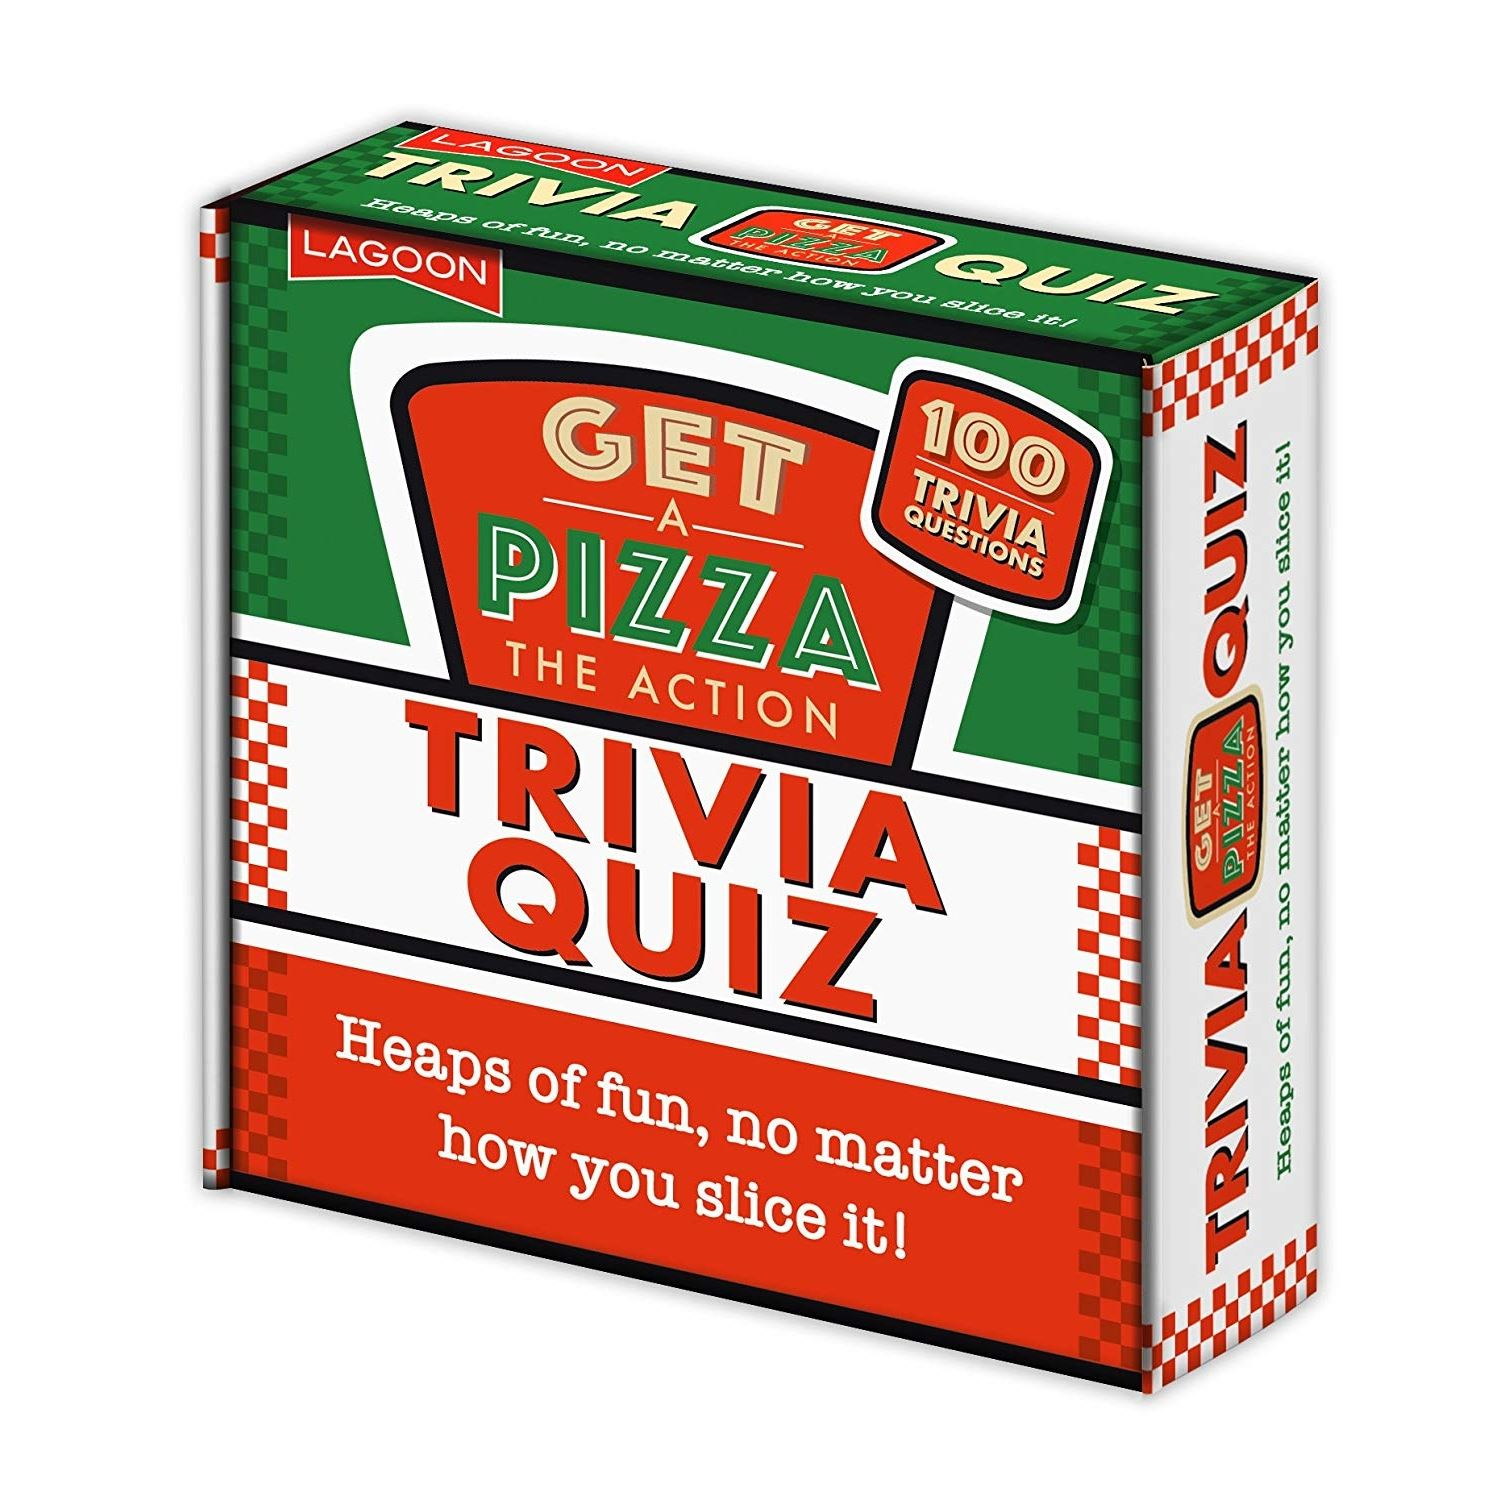 Details about Get A Pizza The Action Trivia Quiz Family General Knowledge  Fun Novelty Game